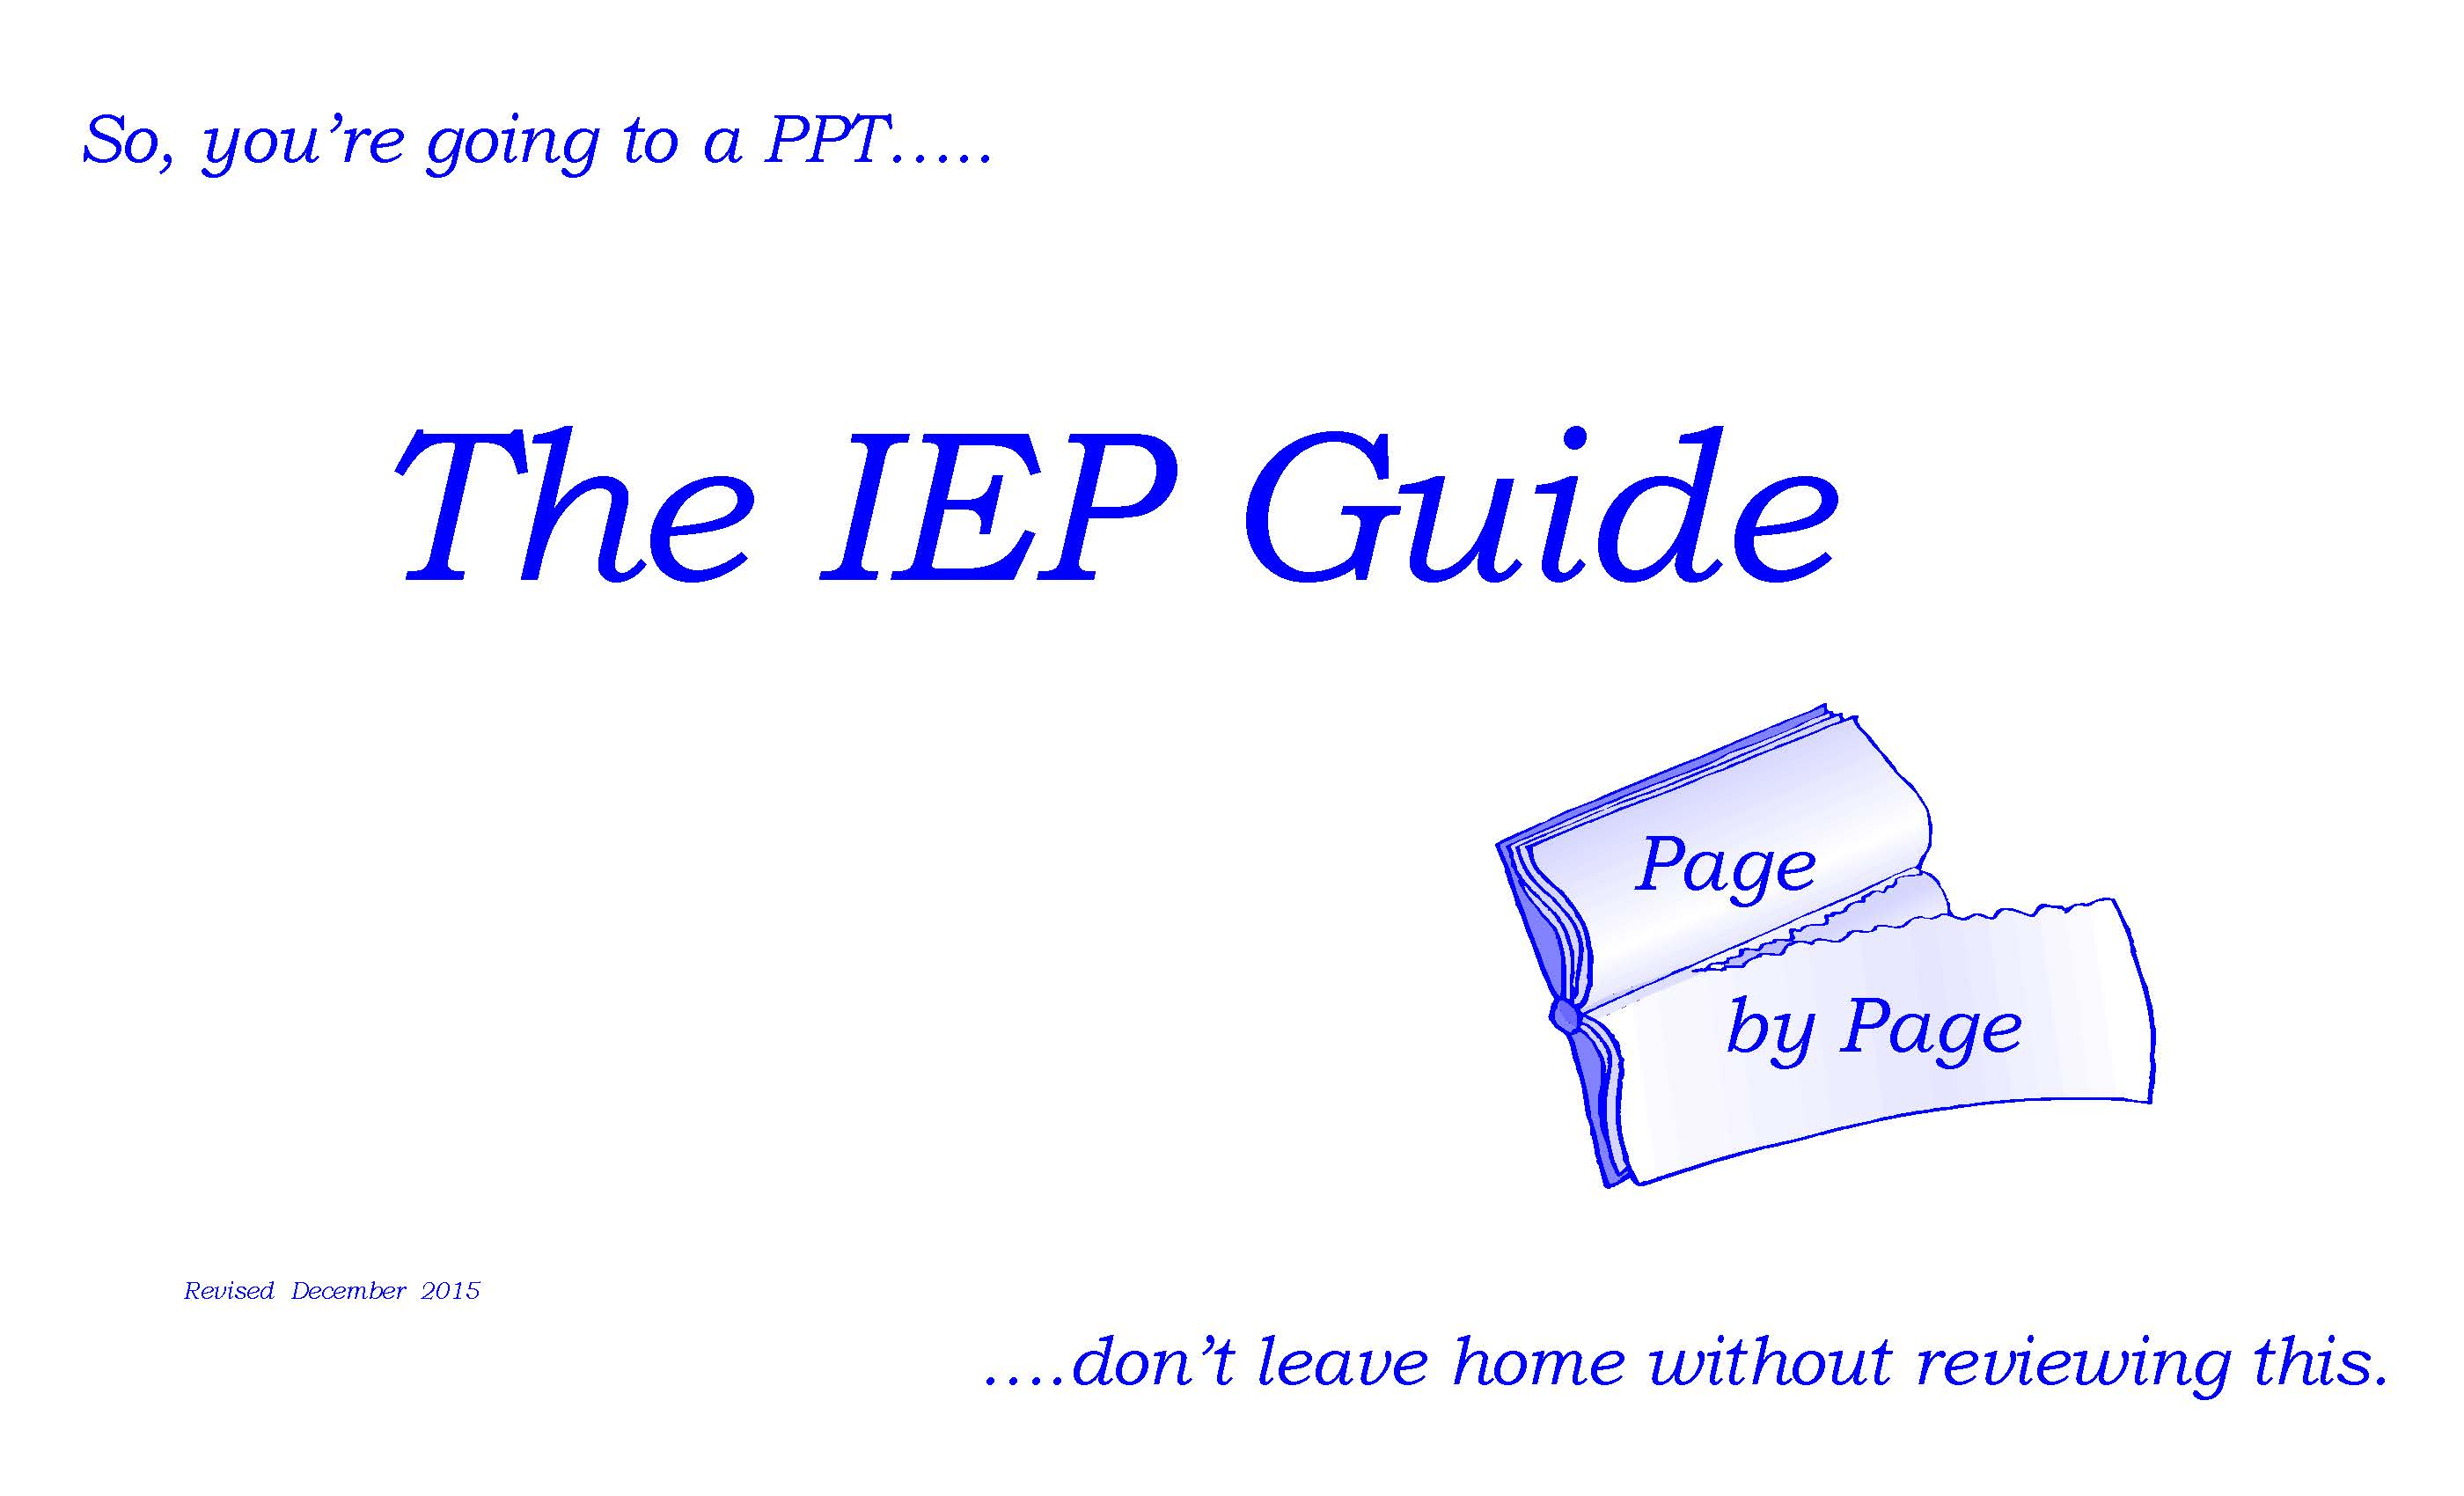 Image of The IEP Guide document